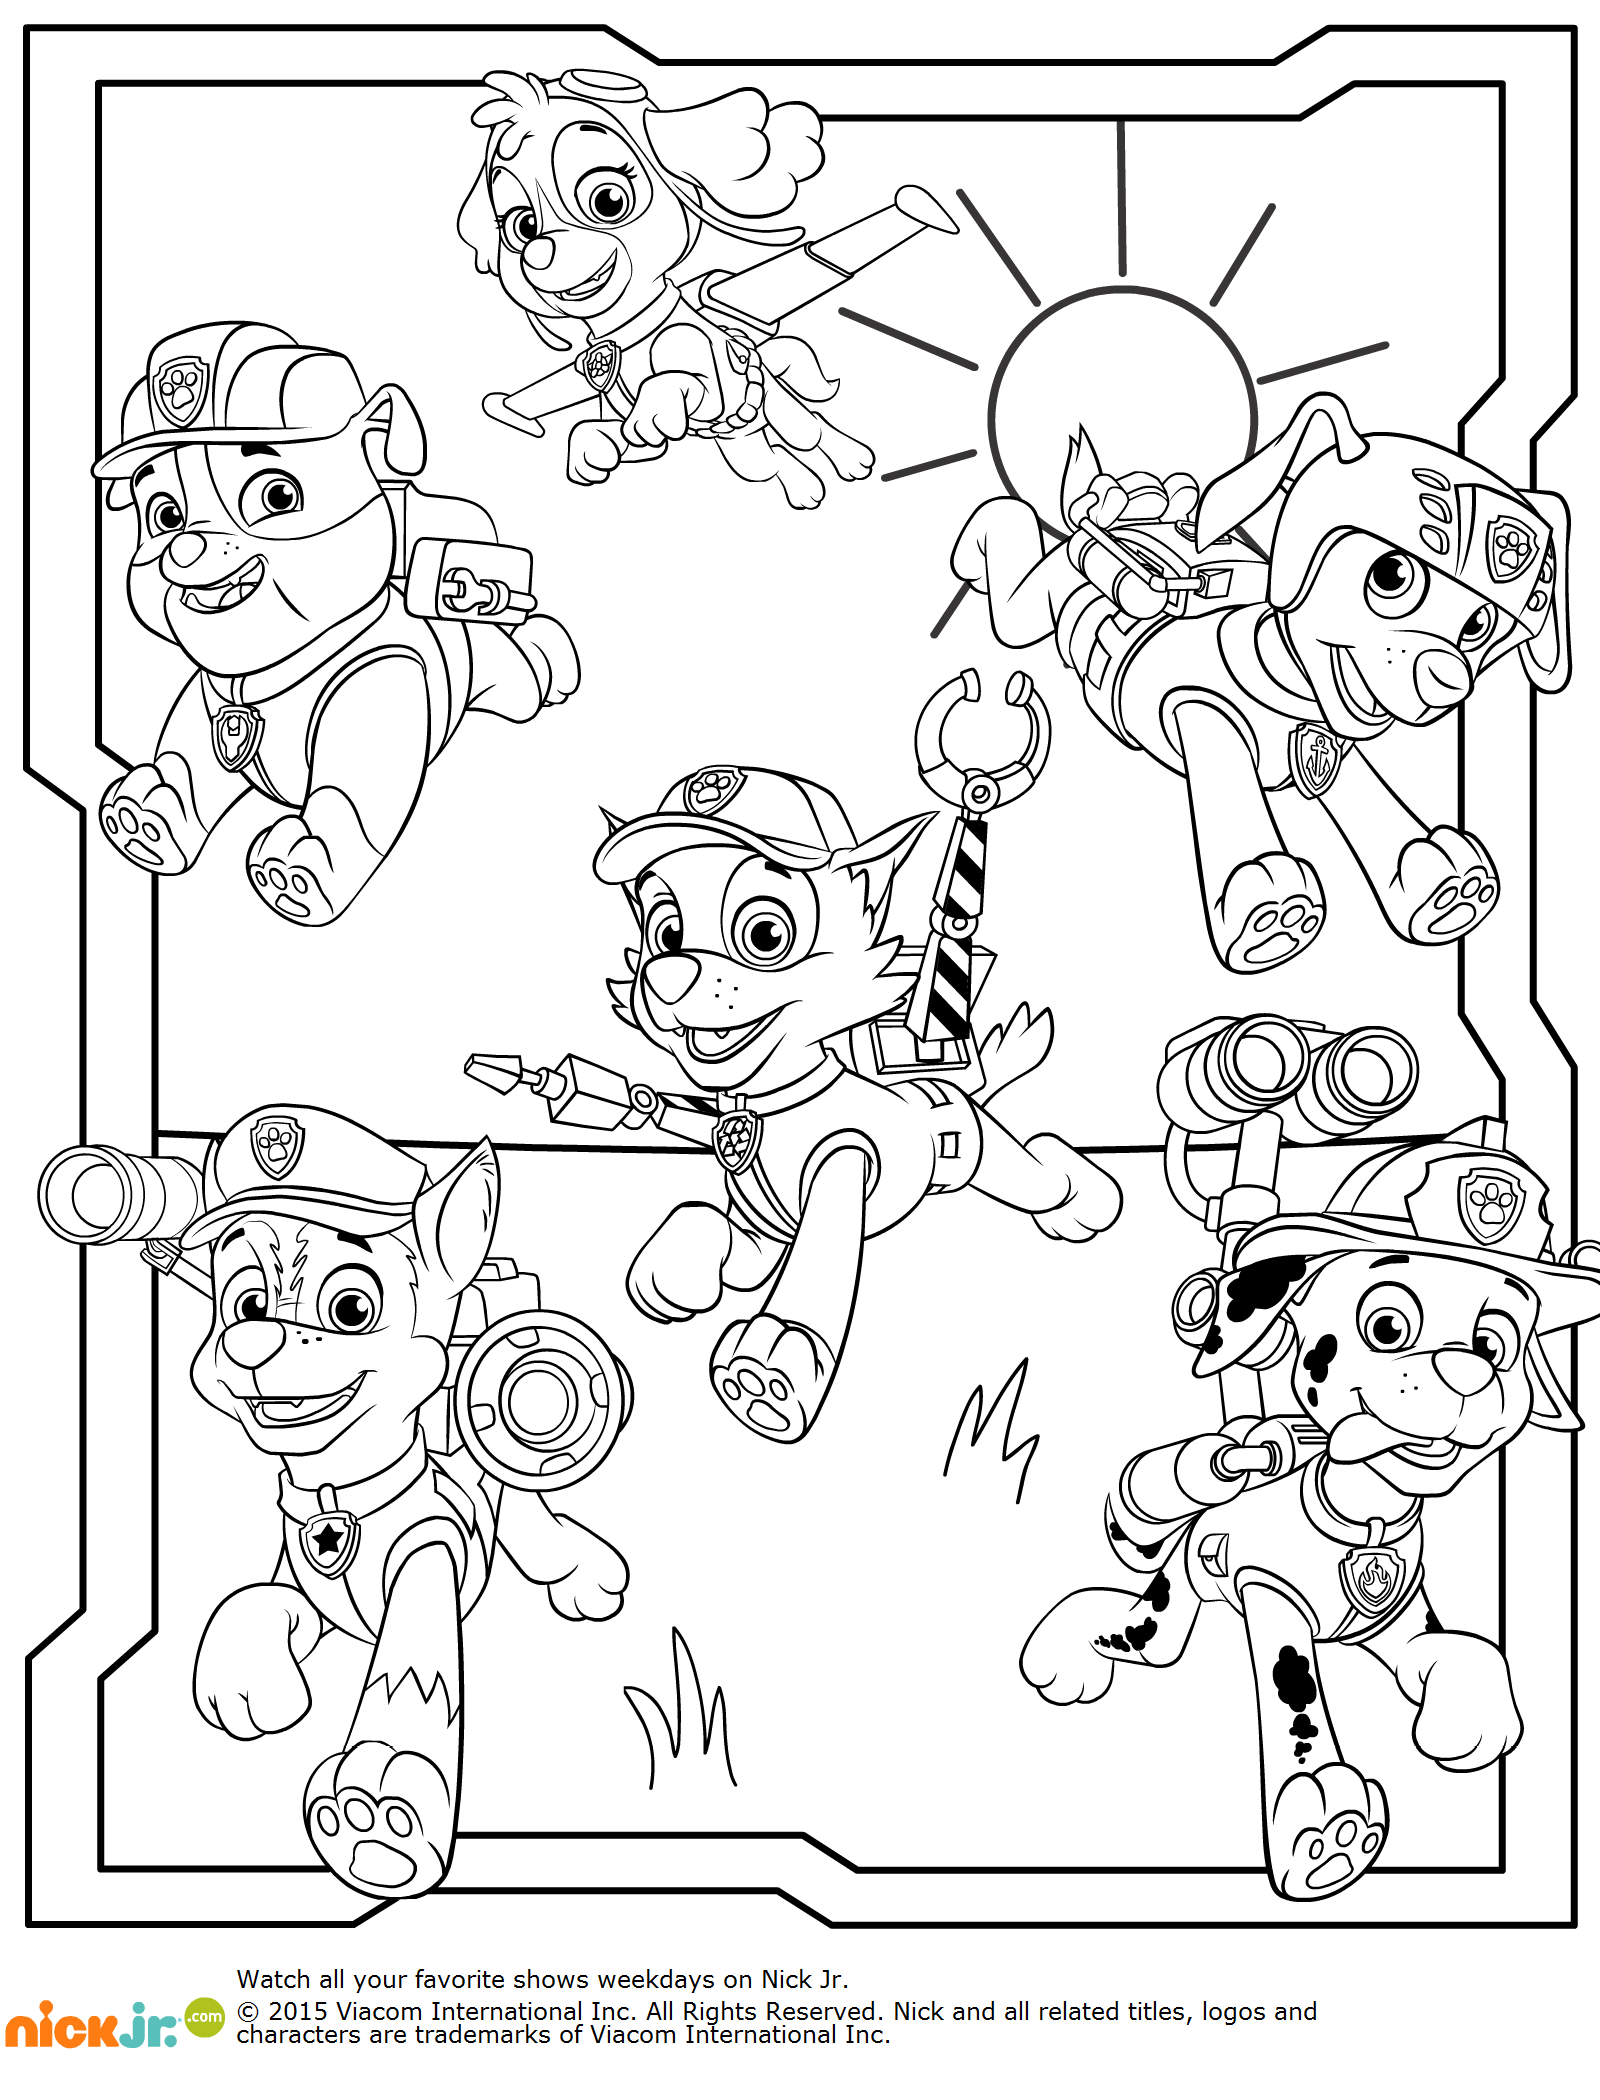 Pin By Zsuzsa Fulop On Mancs Orjarat Paw Patrol Coloring Cute Coloring Pages Detailed Coloring Pages